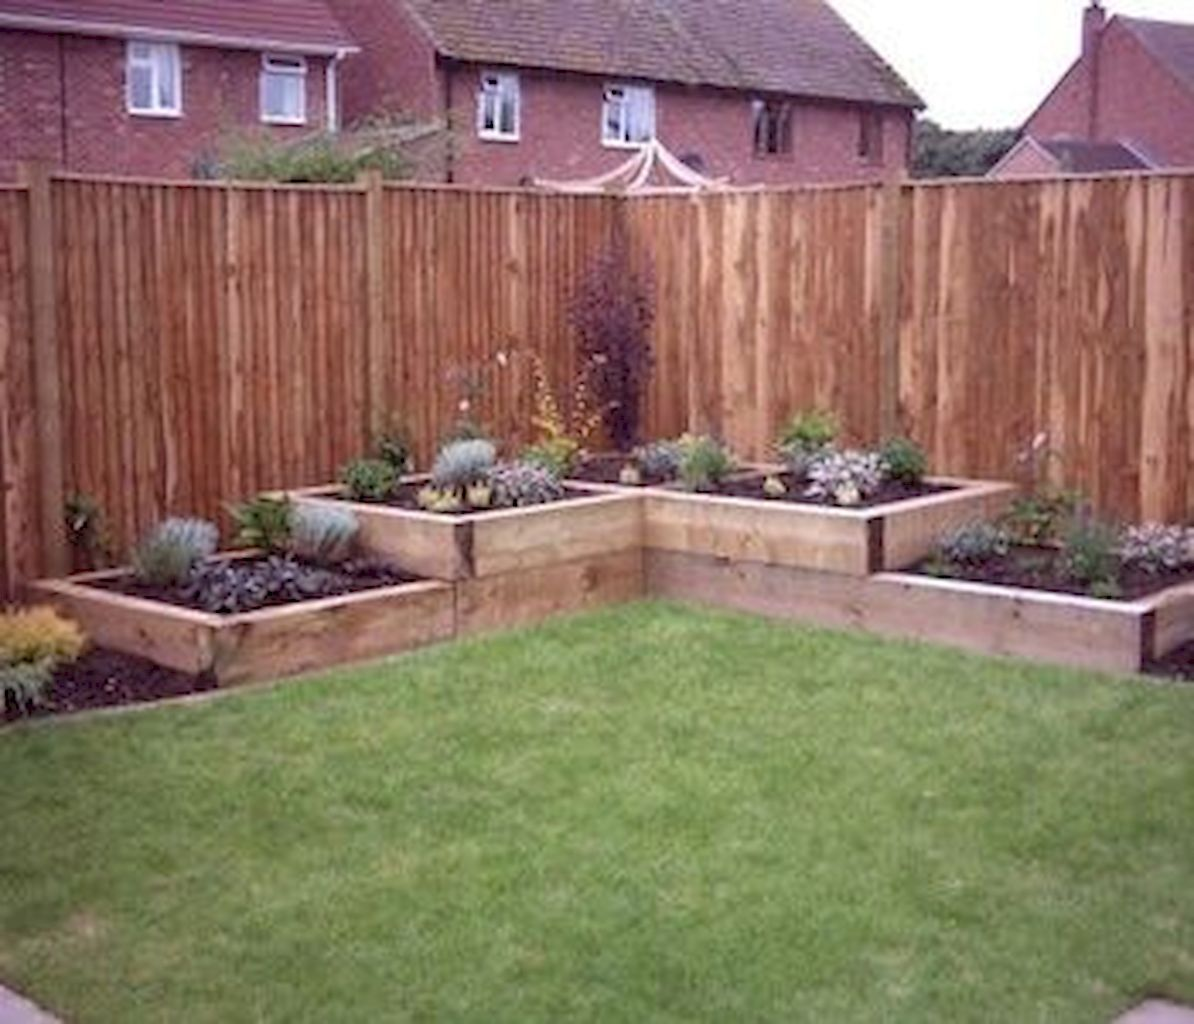 40 beautiful backyard landscaping ideas on a budget for Garden patio ideas on a budget